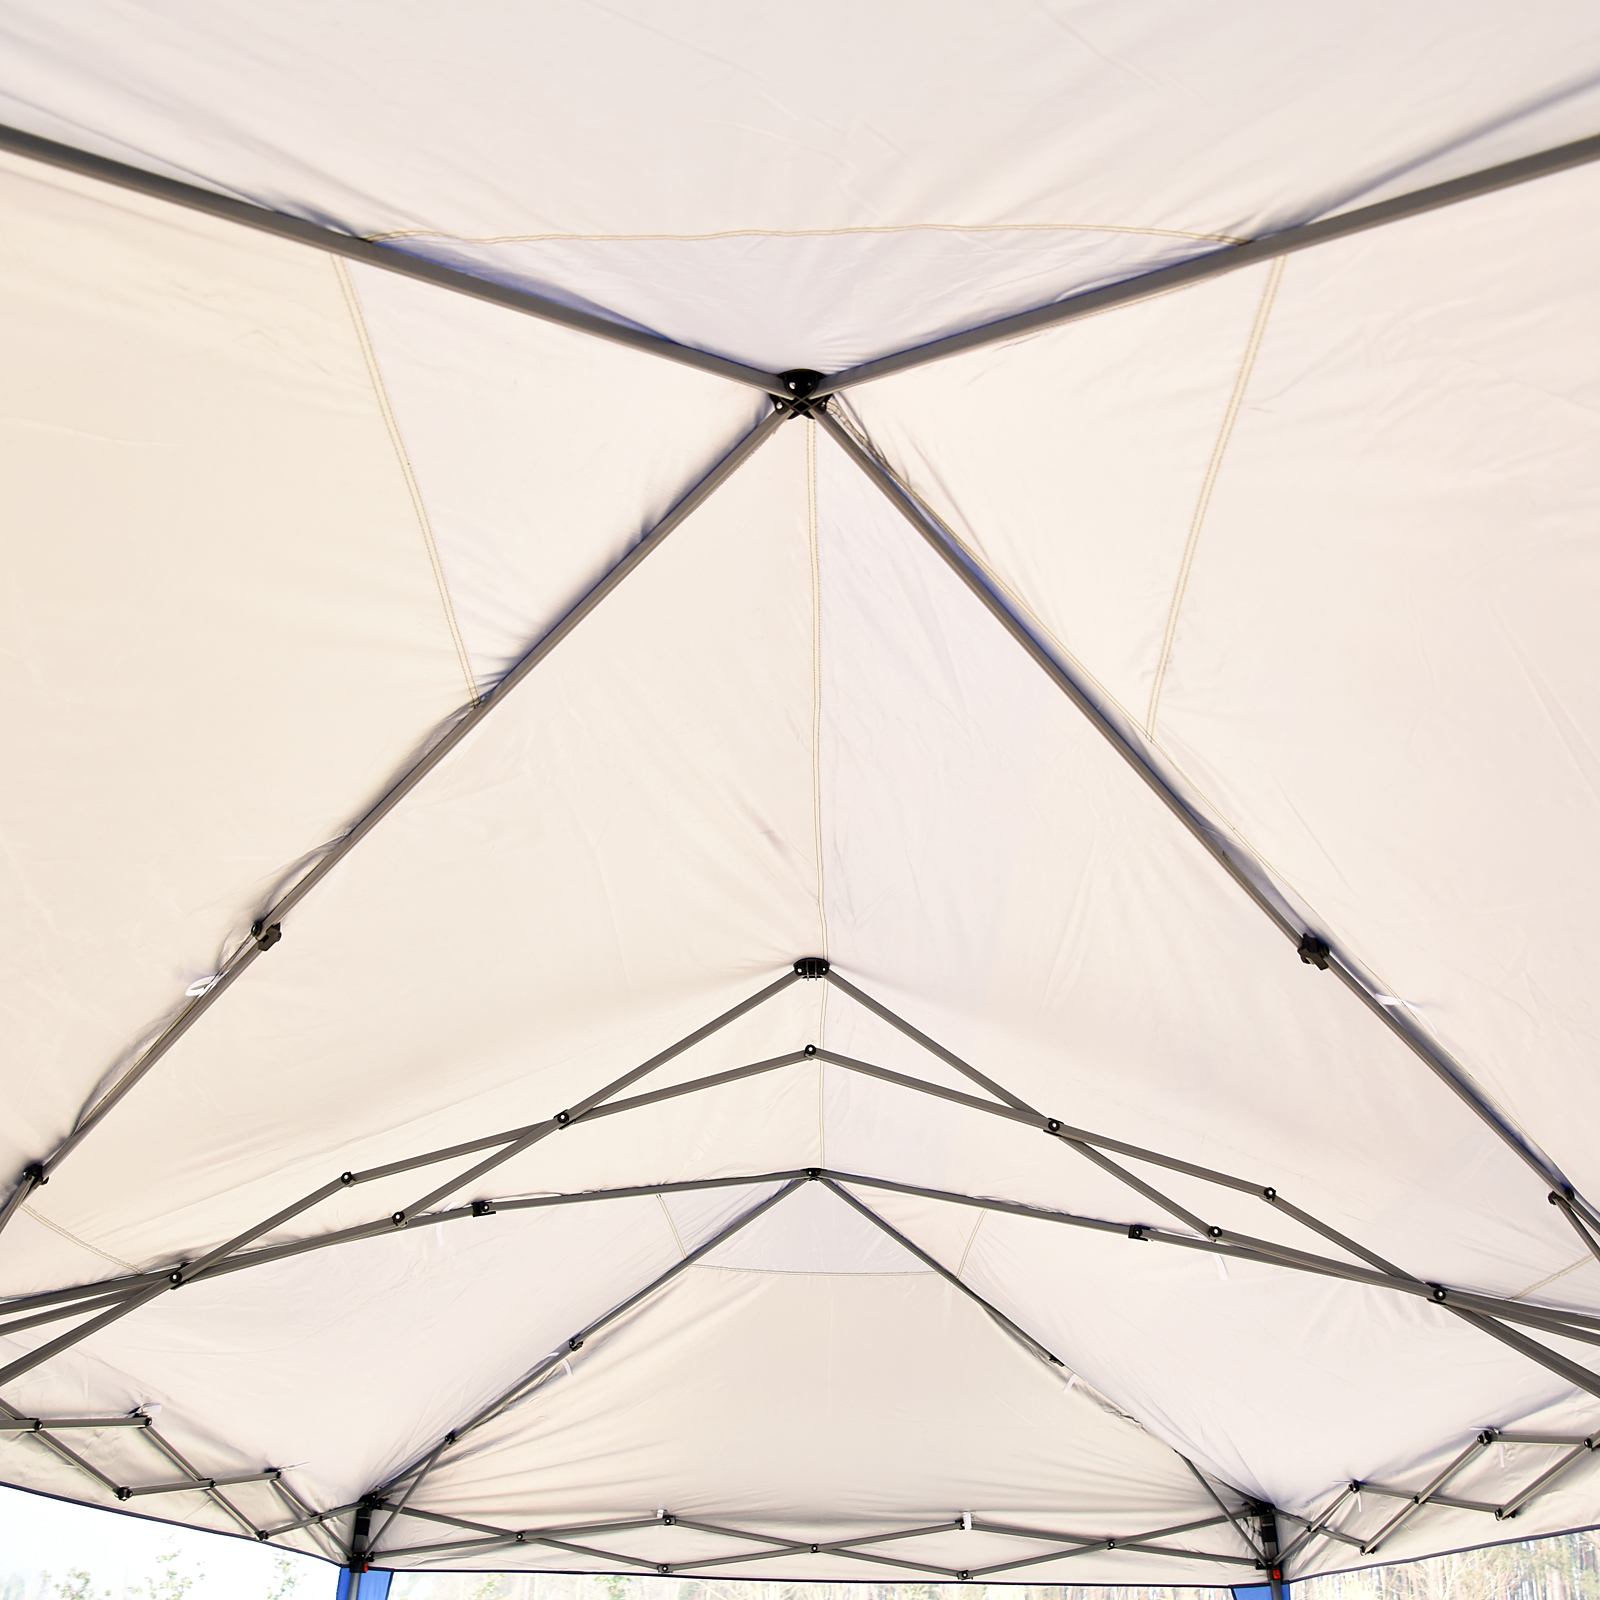 10-x-20-Outdoor-Gazebo-Pop-Up-Canopy-Party-Tent-with-2-Tier-Roof thumbnail 7